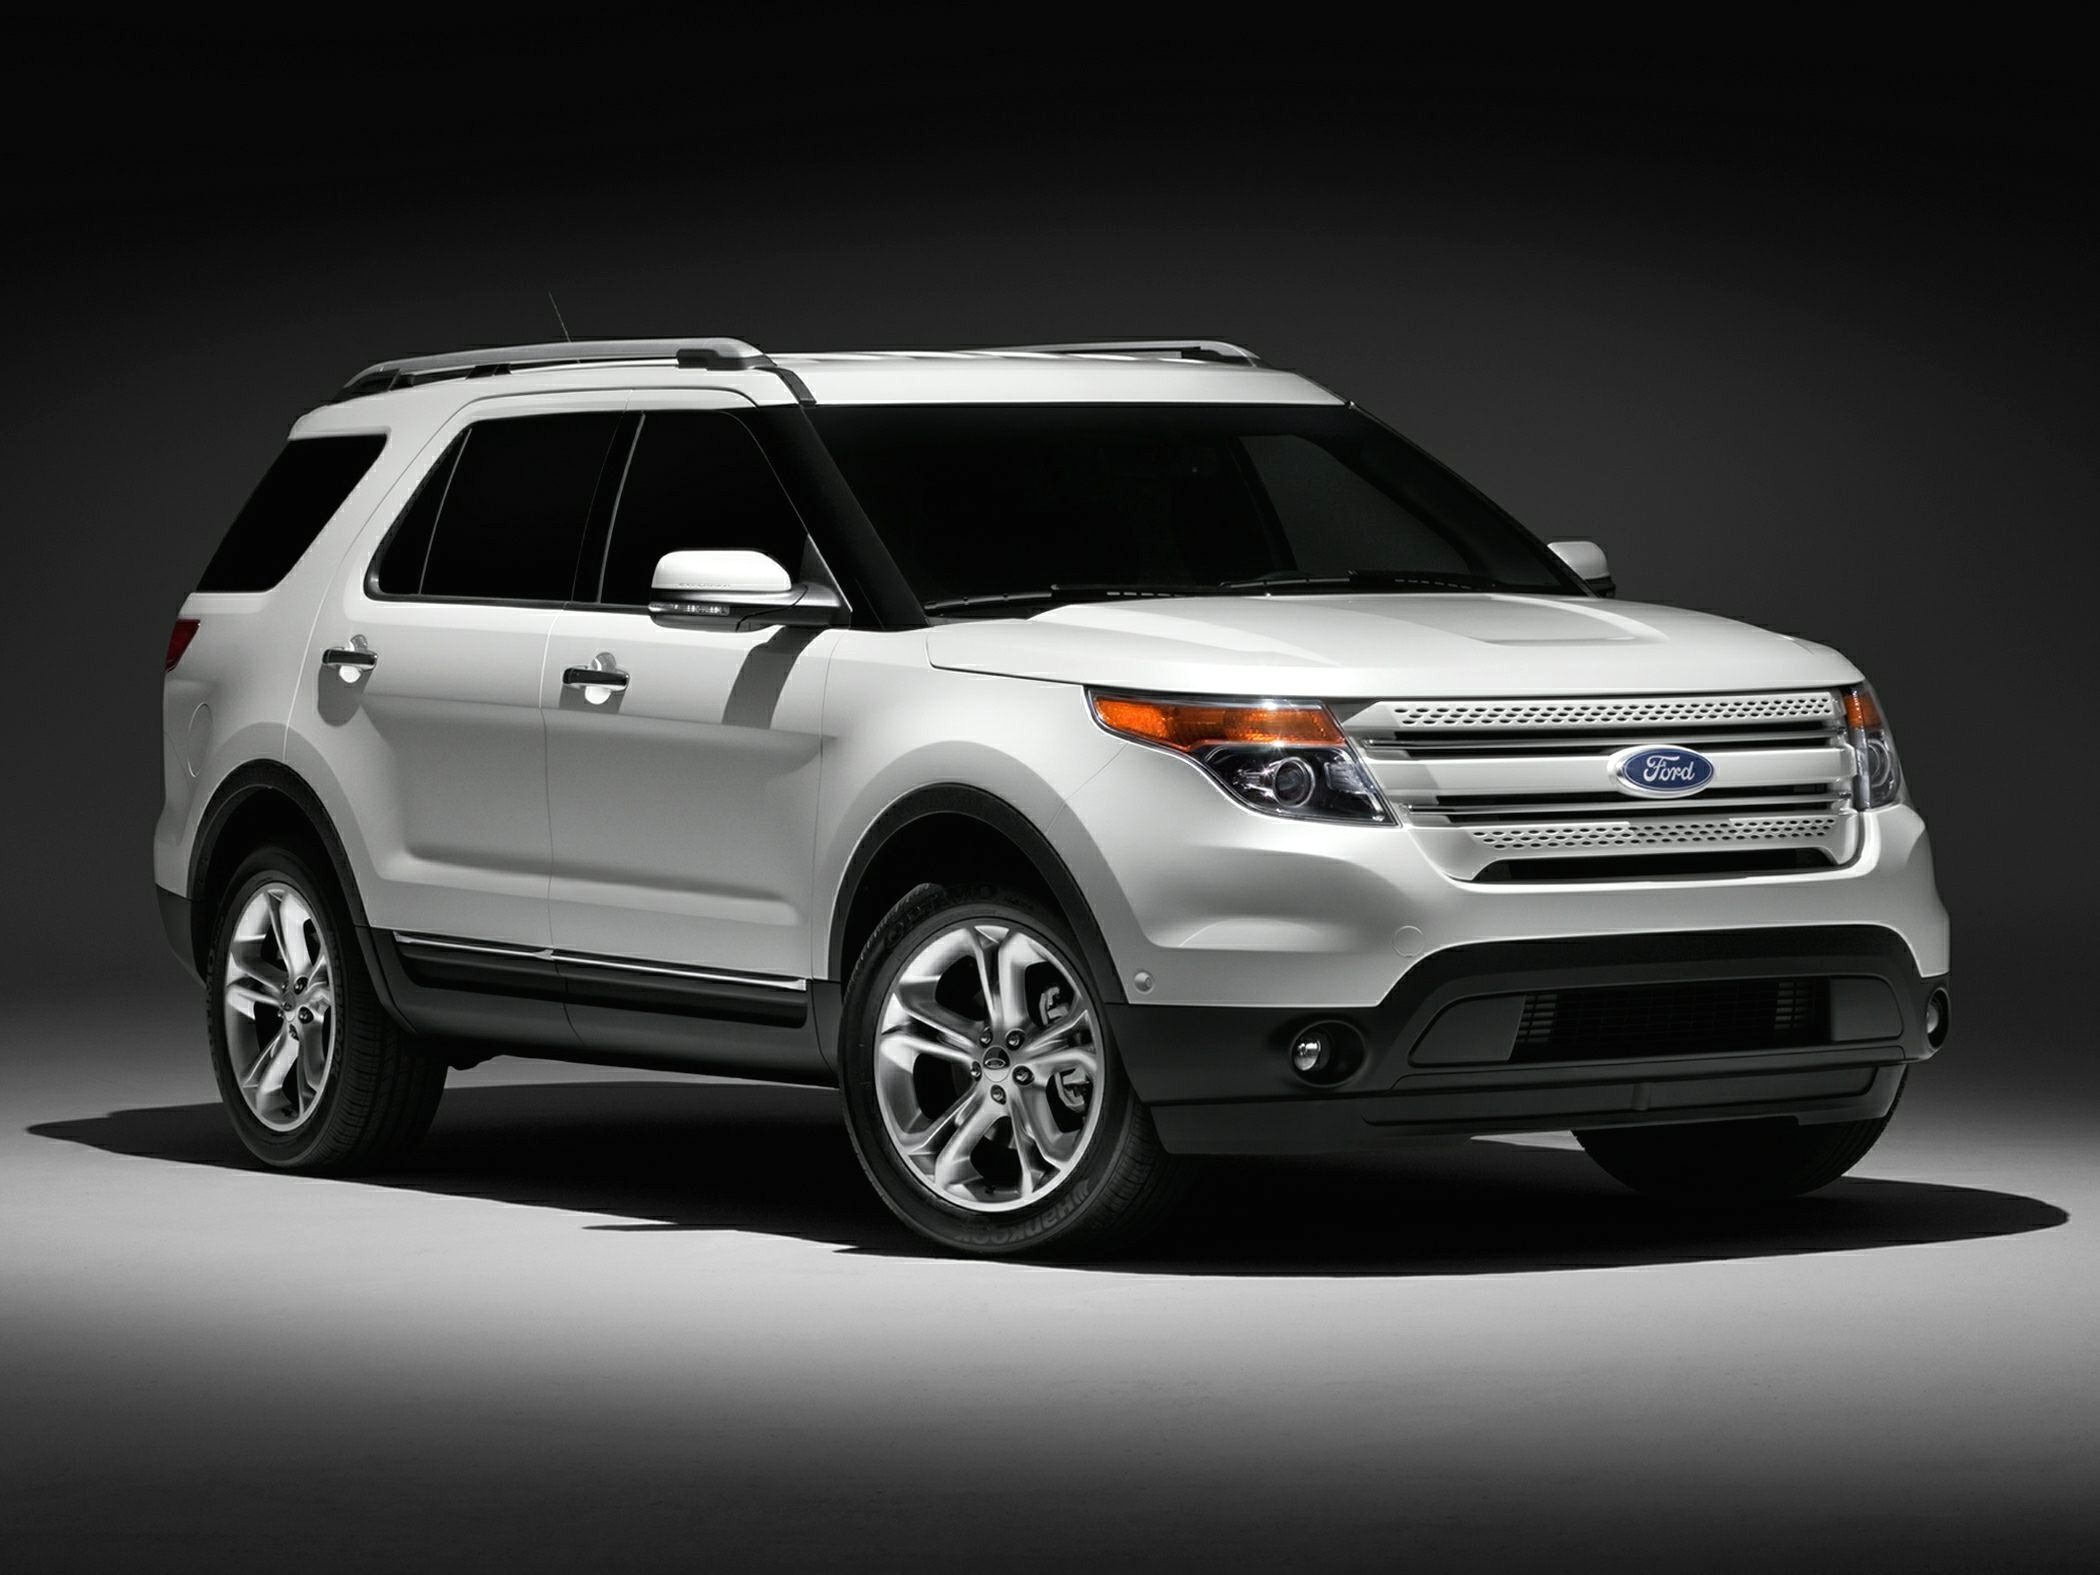 Ford Explorer Specifications Форд